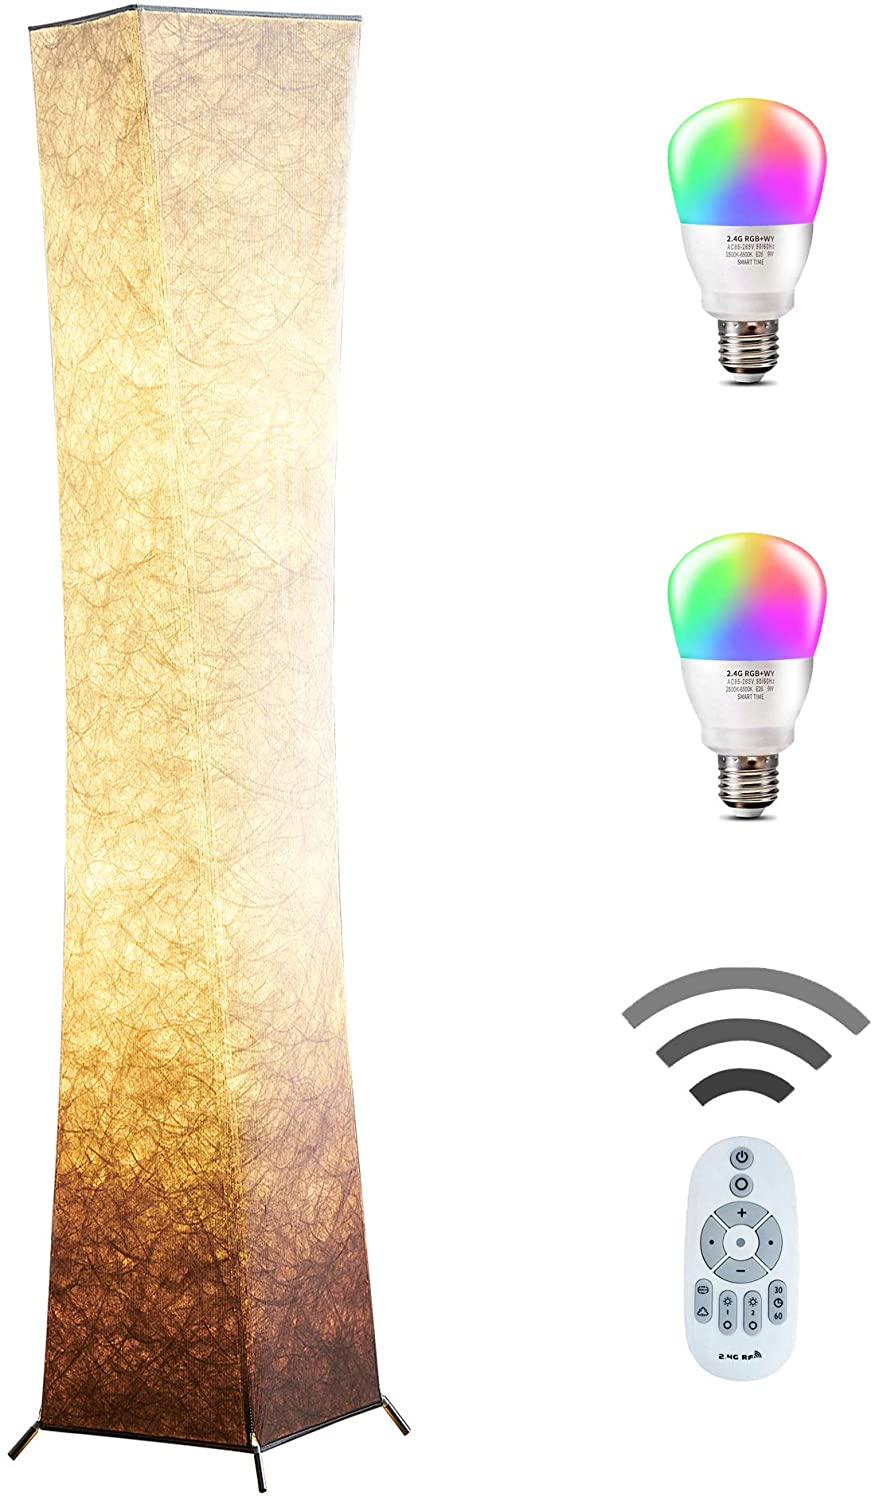 Floor-Lamp-CHIPHY-61-RGB-Standing-Lamp 15 Unique Artistic Floor Lamps to Light Your Bedroom